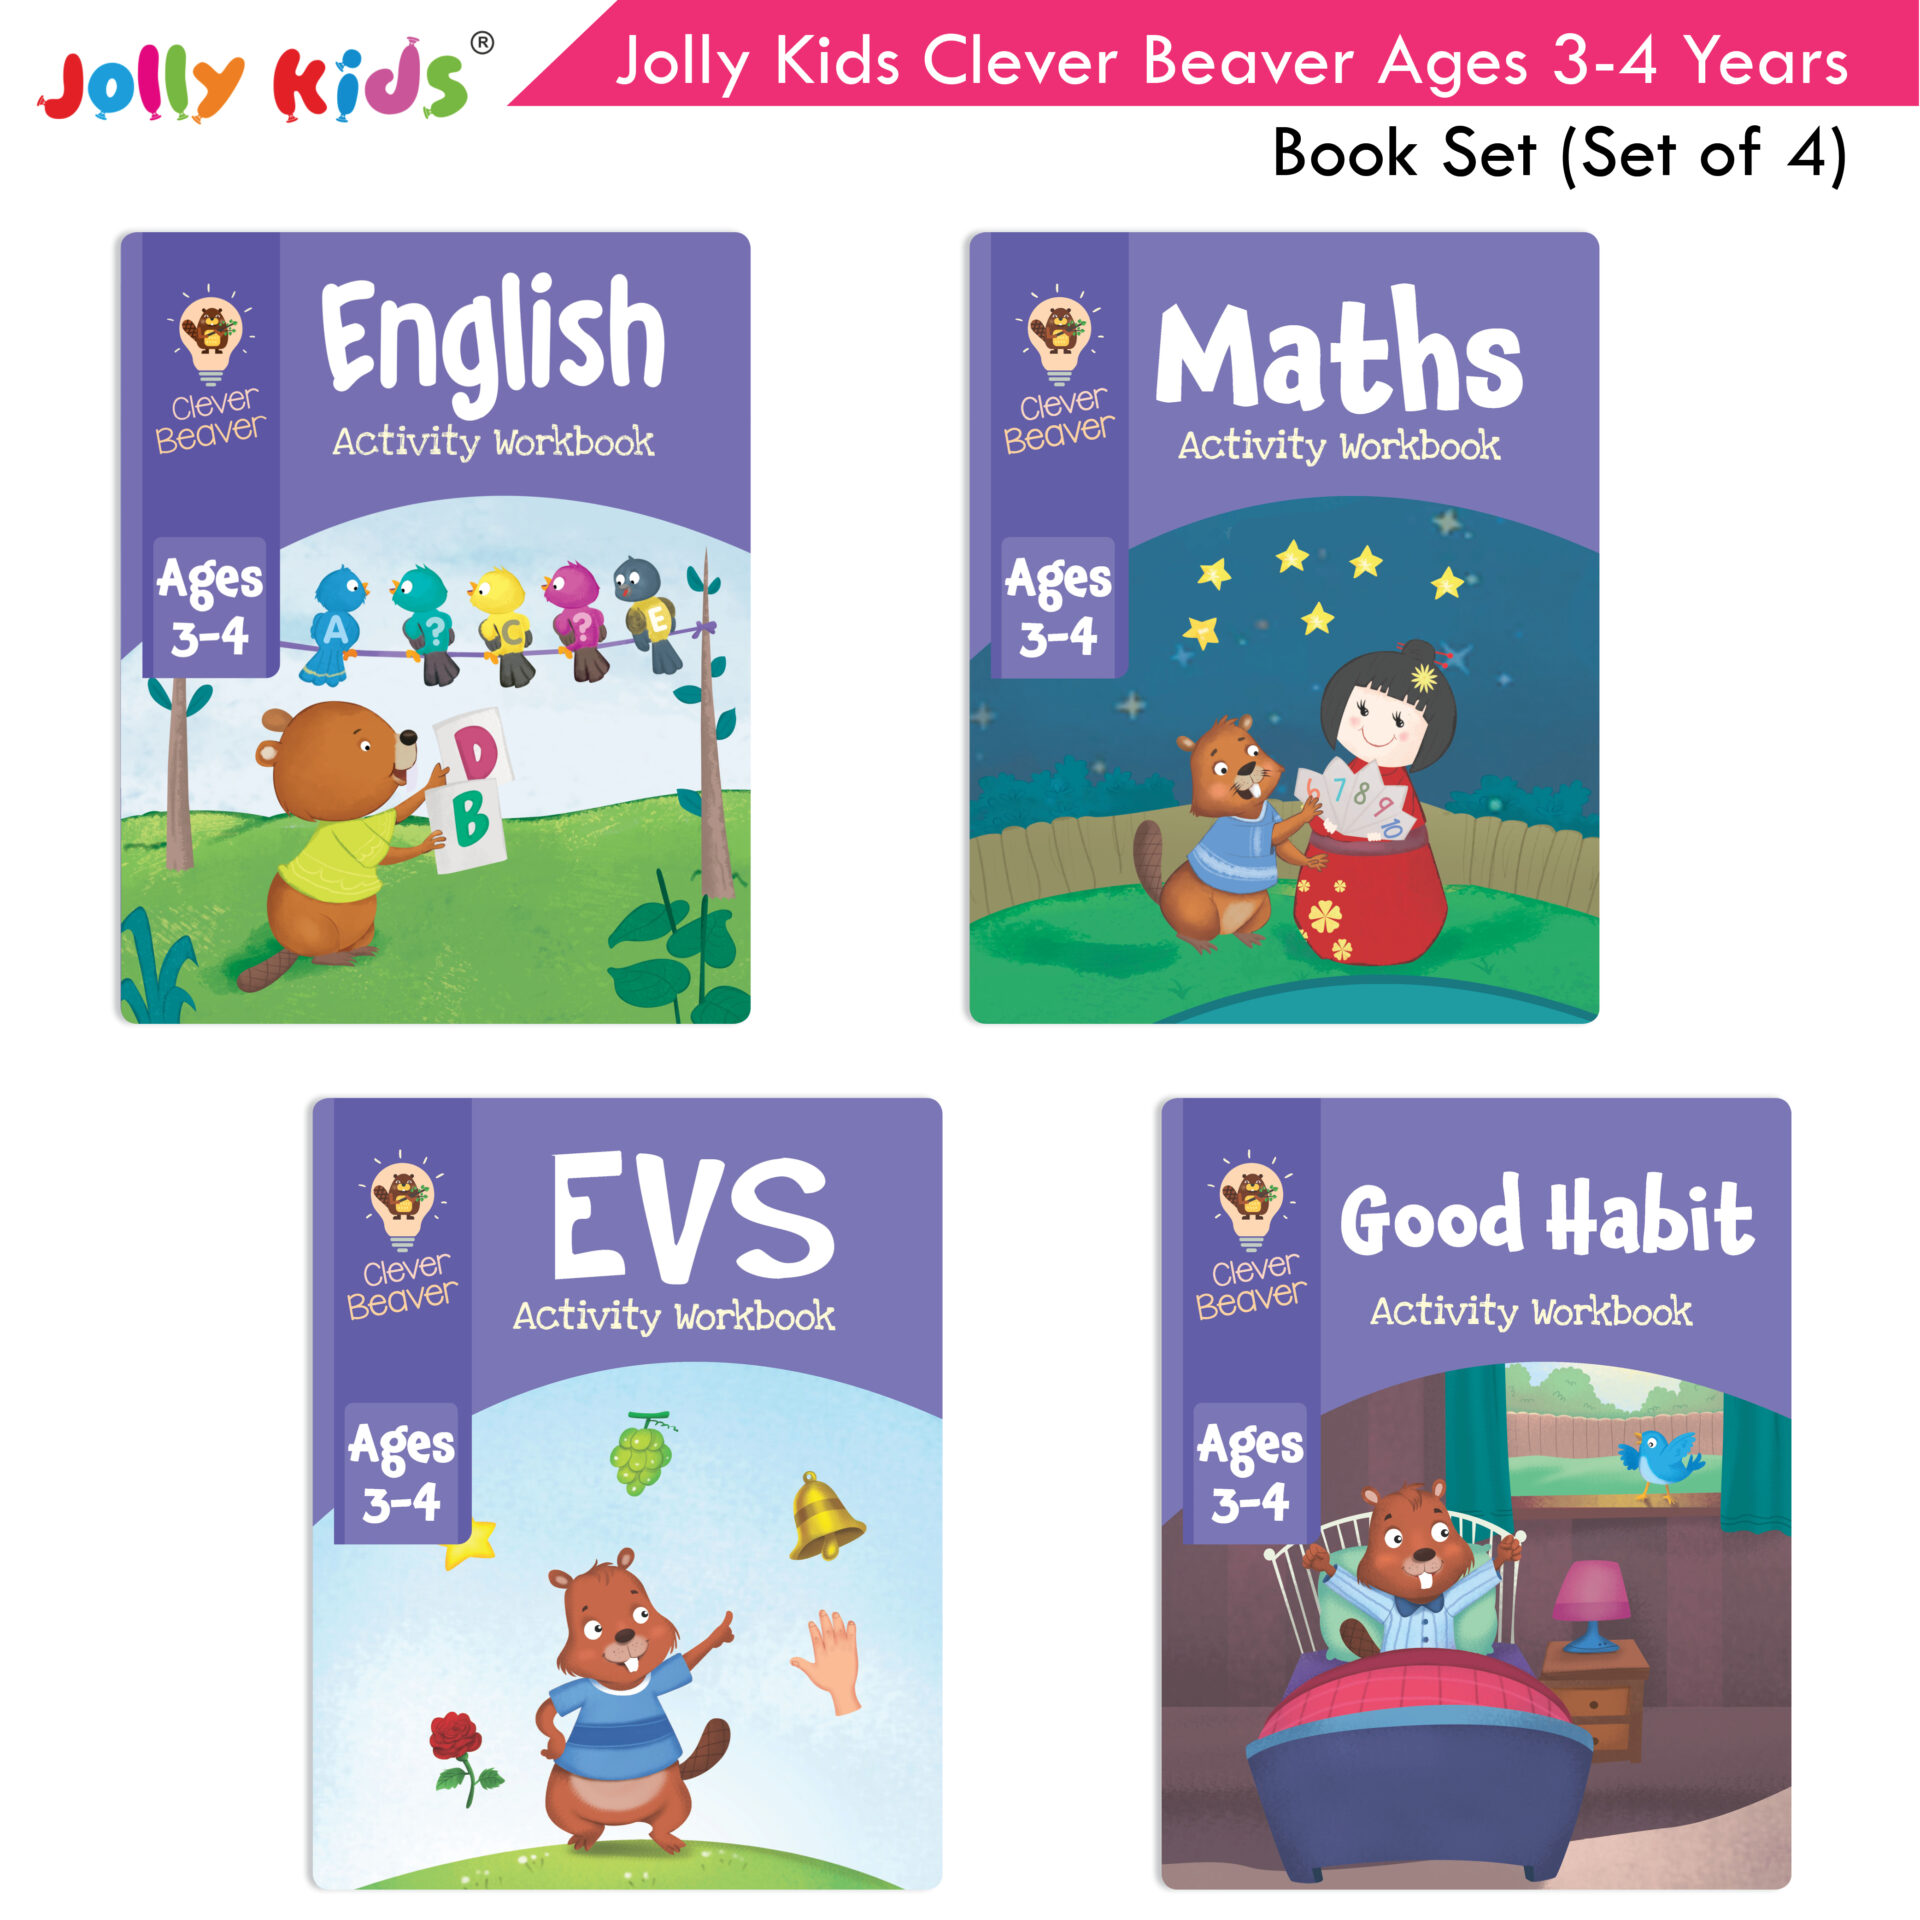 Jolly Kids Clever Beaver Ages 3 4 Years Book Set Set of 4 1